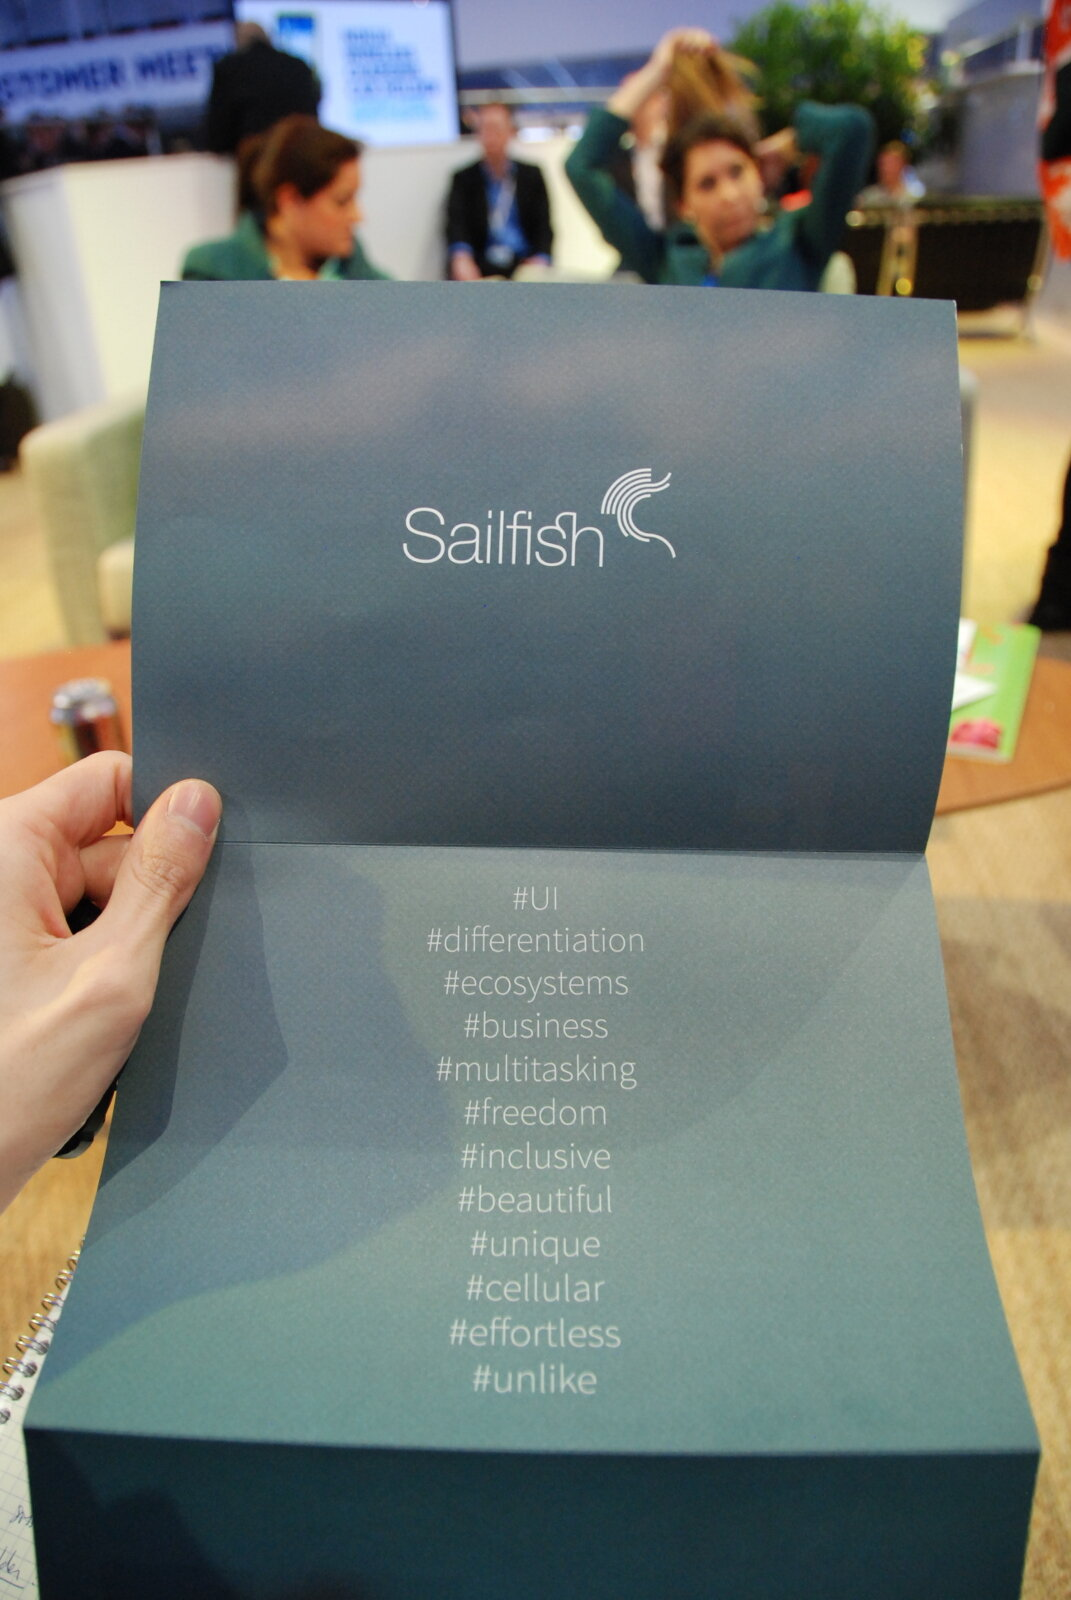 Coisas de Barcelona: que tal o SDK do Sailfish?